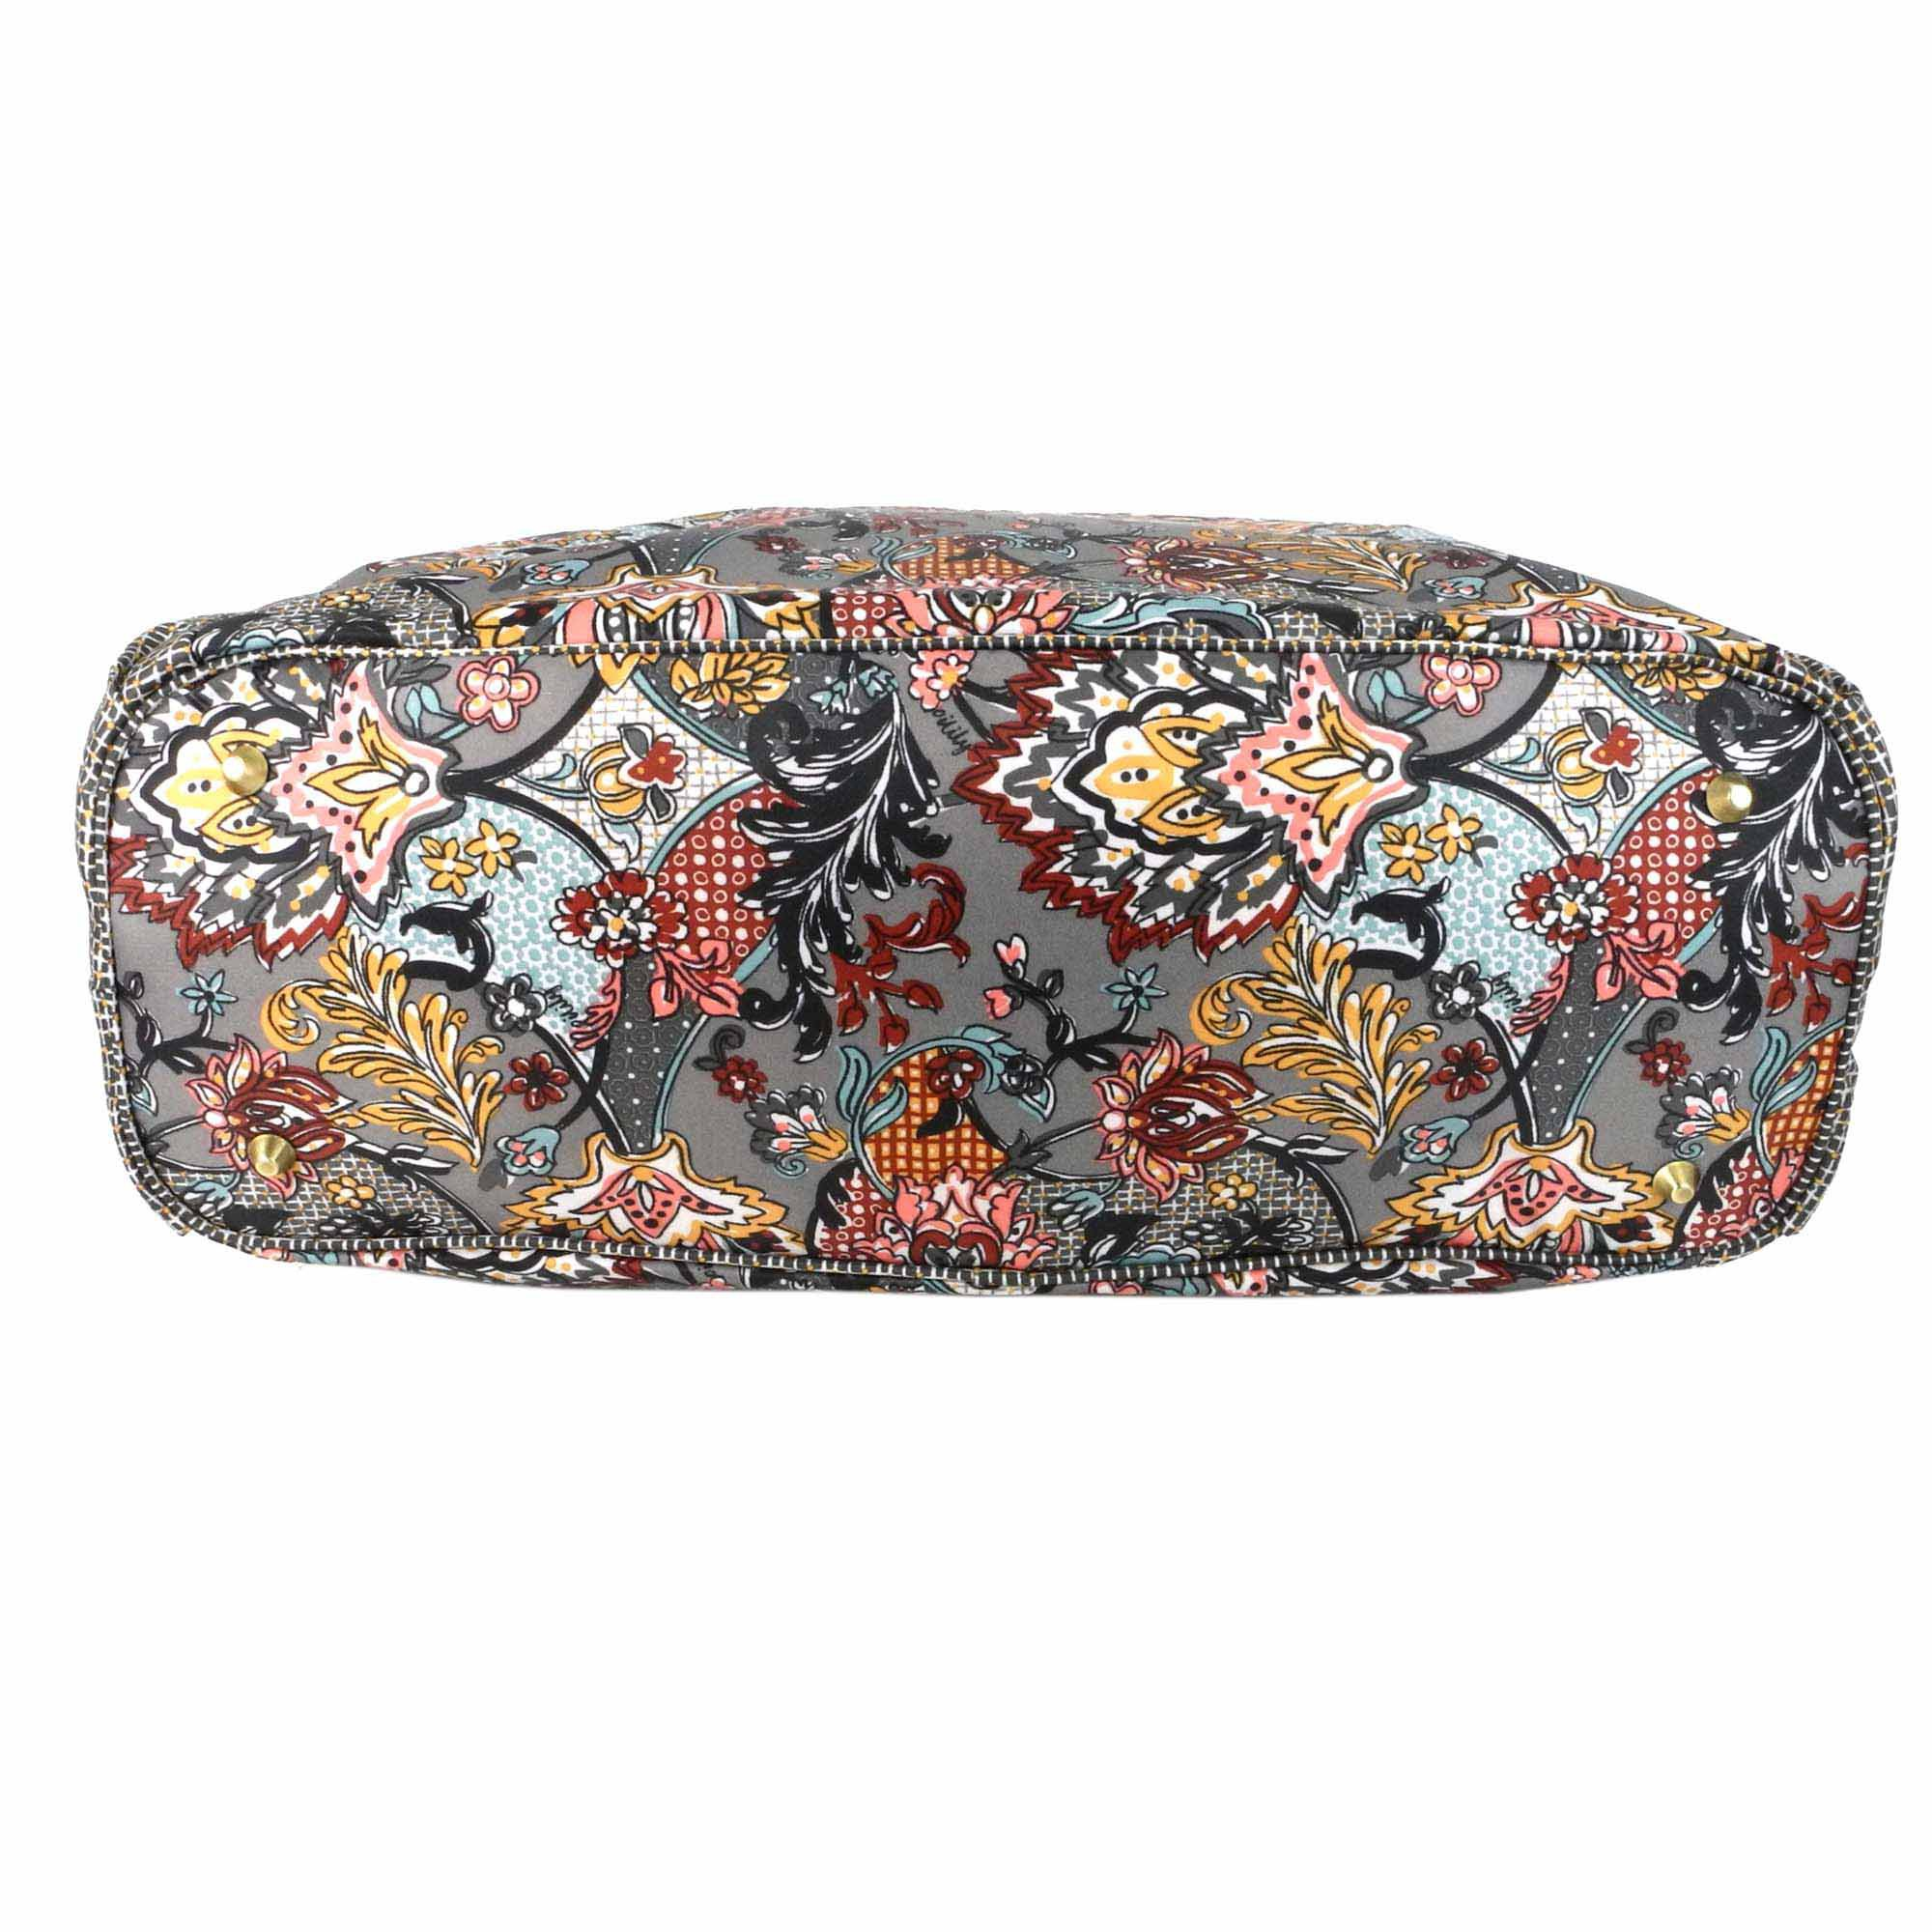 oilily french paisley wickeltasche baby bag iron ausverkauft. Black Bedroom Furniture Sets. Home Design Ideas